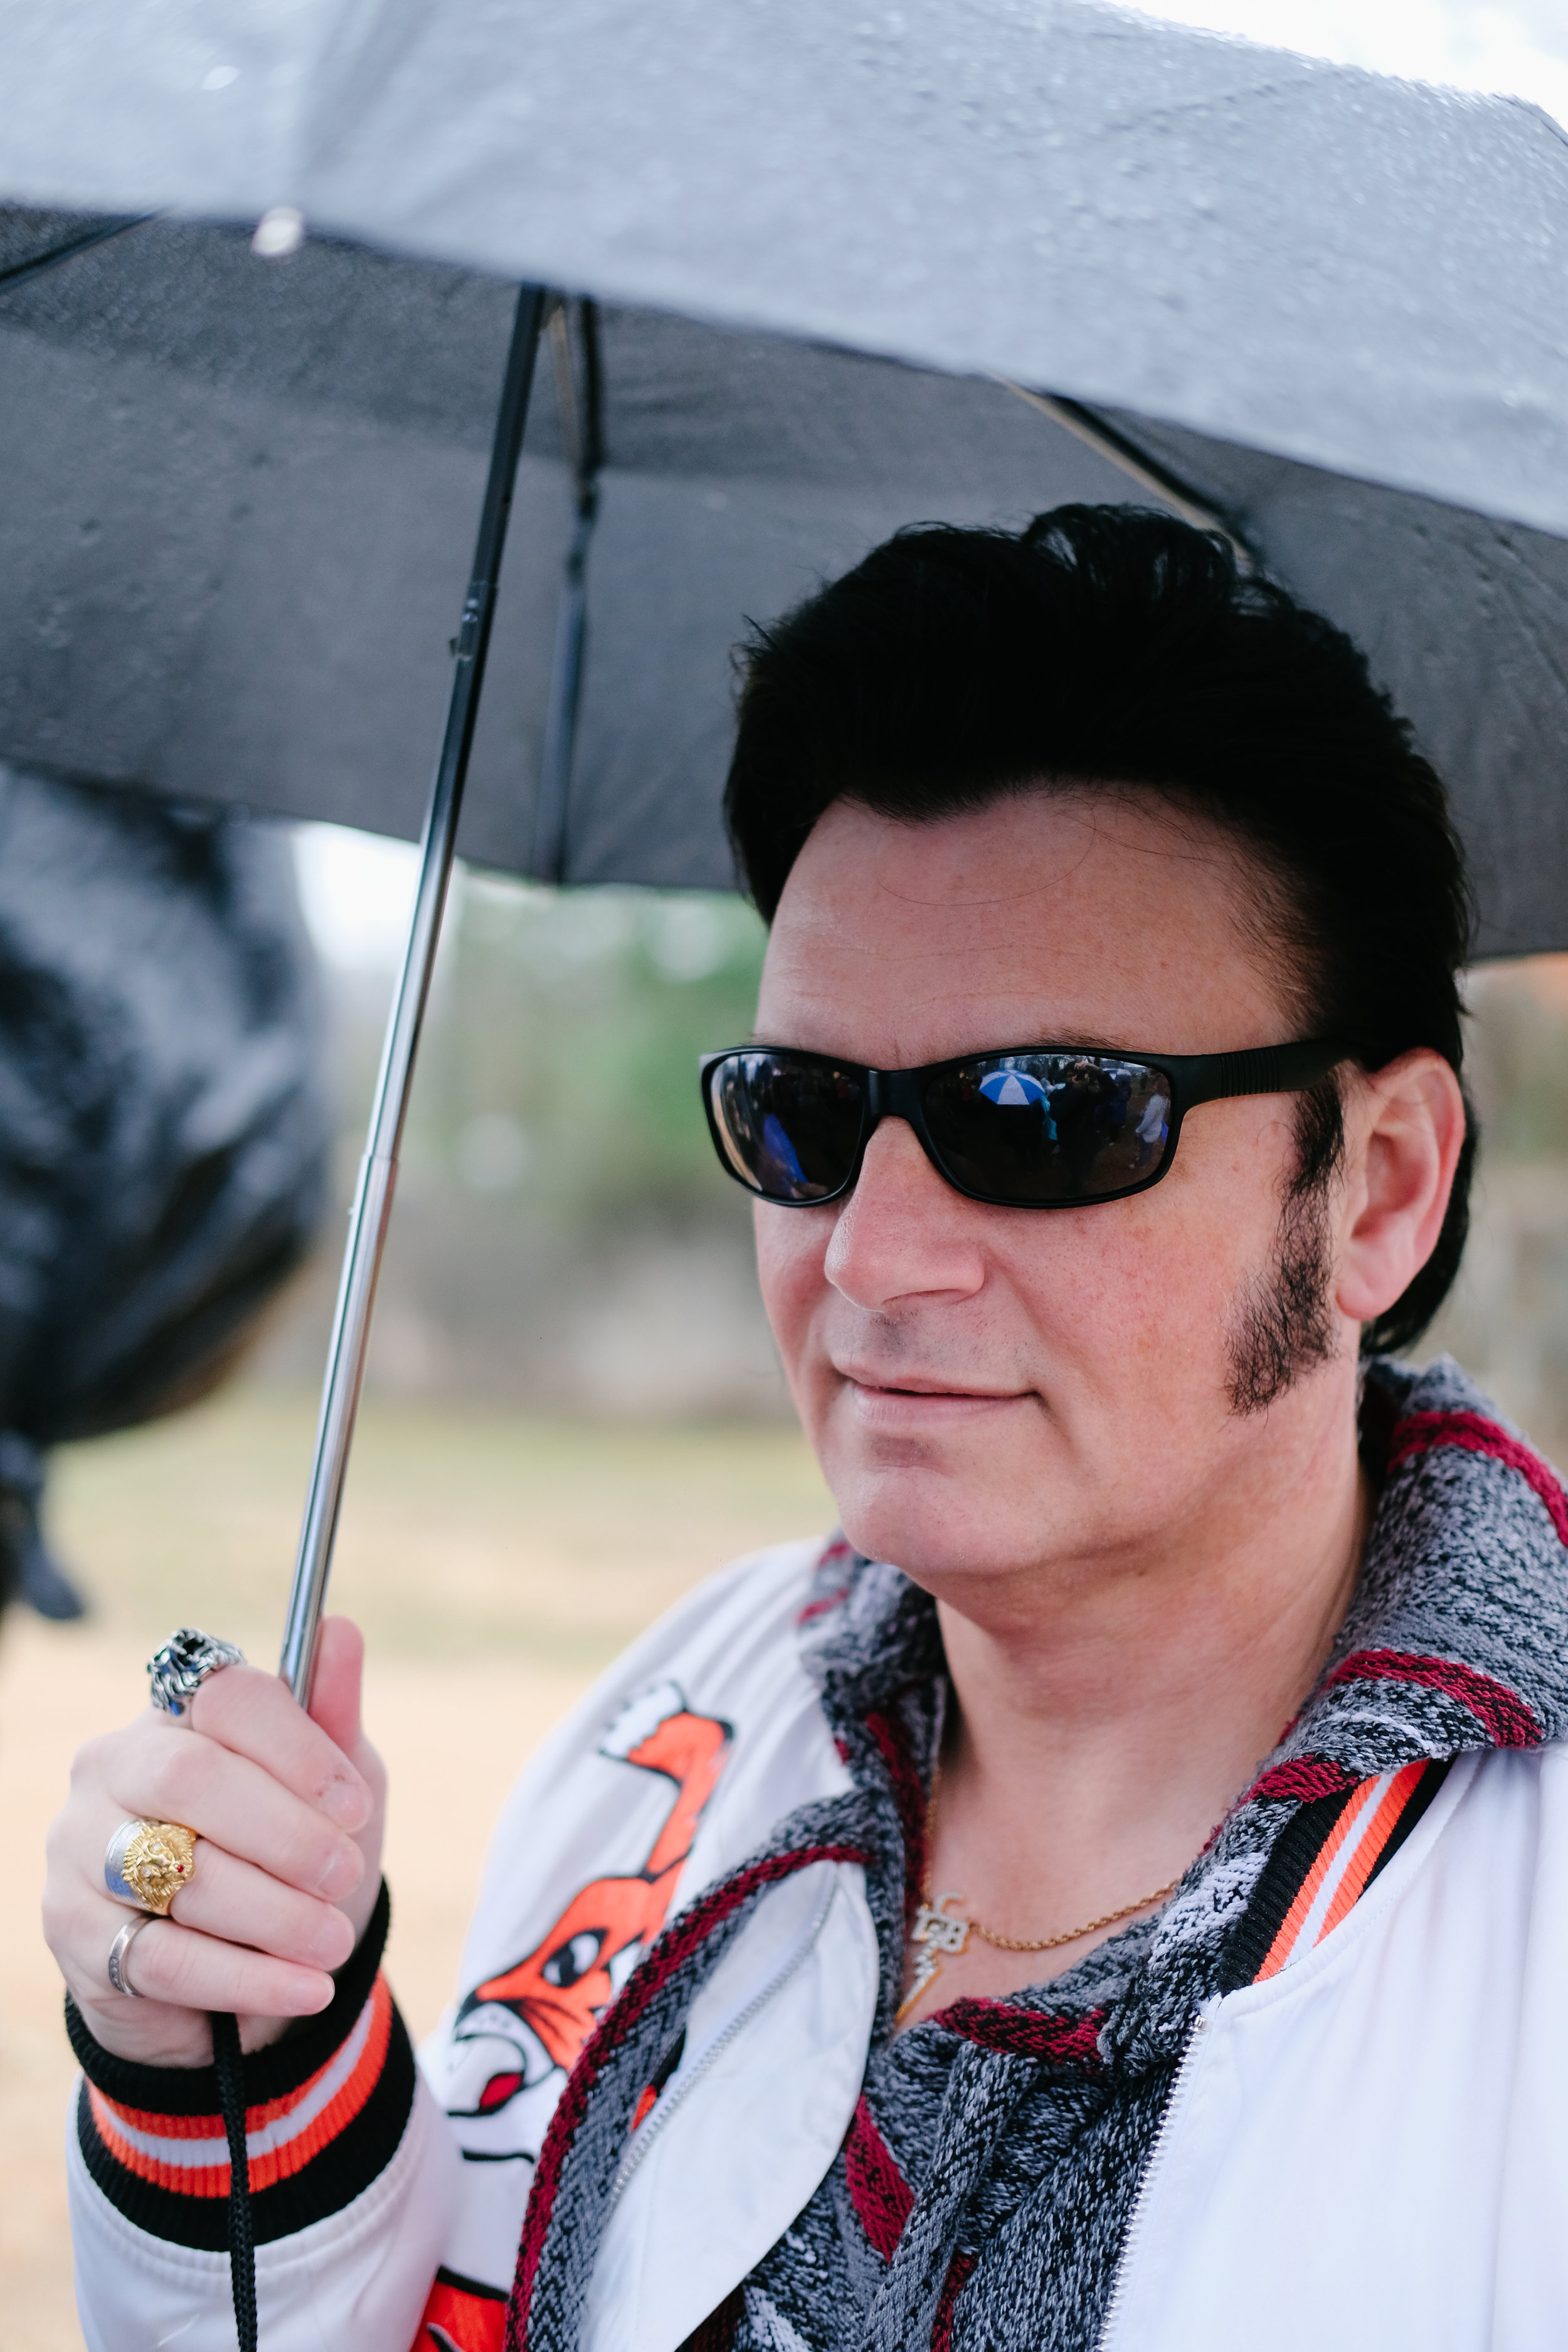 An Elvis fan comes in costume to celebrate the King's birthday, undeterred by the rainy weather, January 8, 2018.